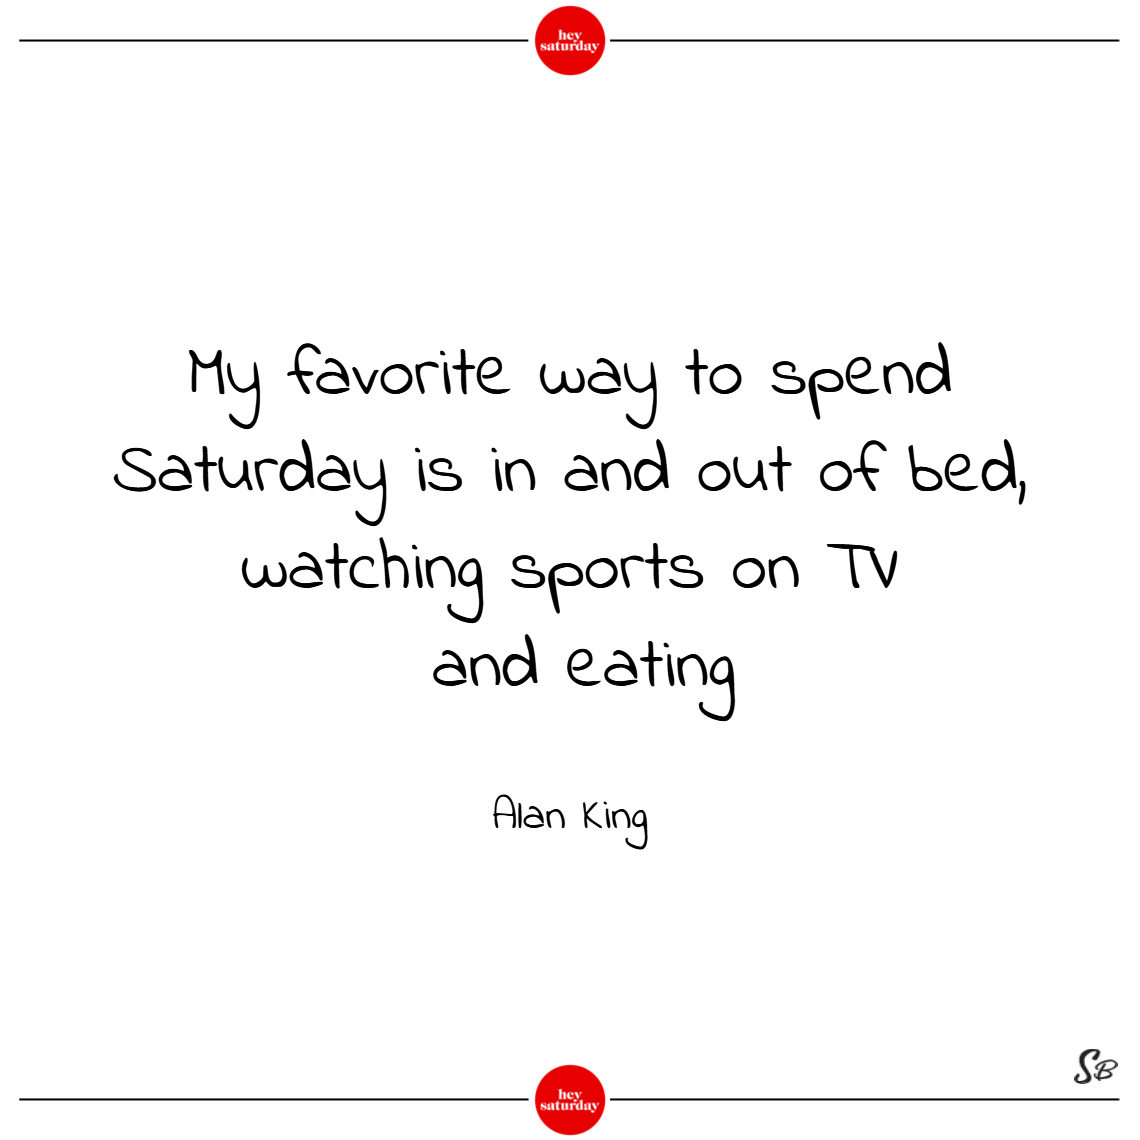 My favorite way to spend saturday is in and out of bed, watching sports on tv and eating. – alan king